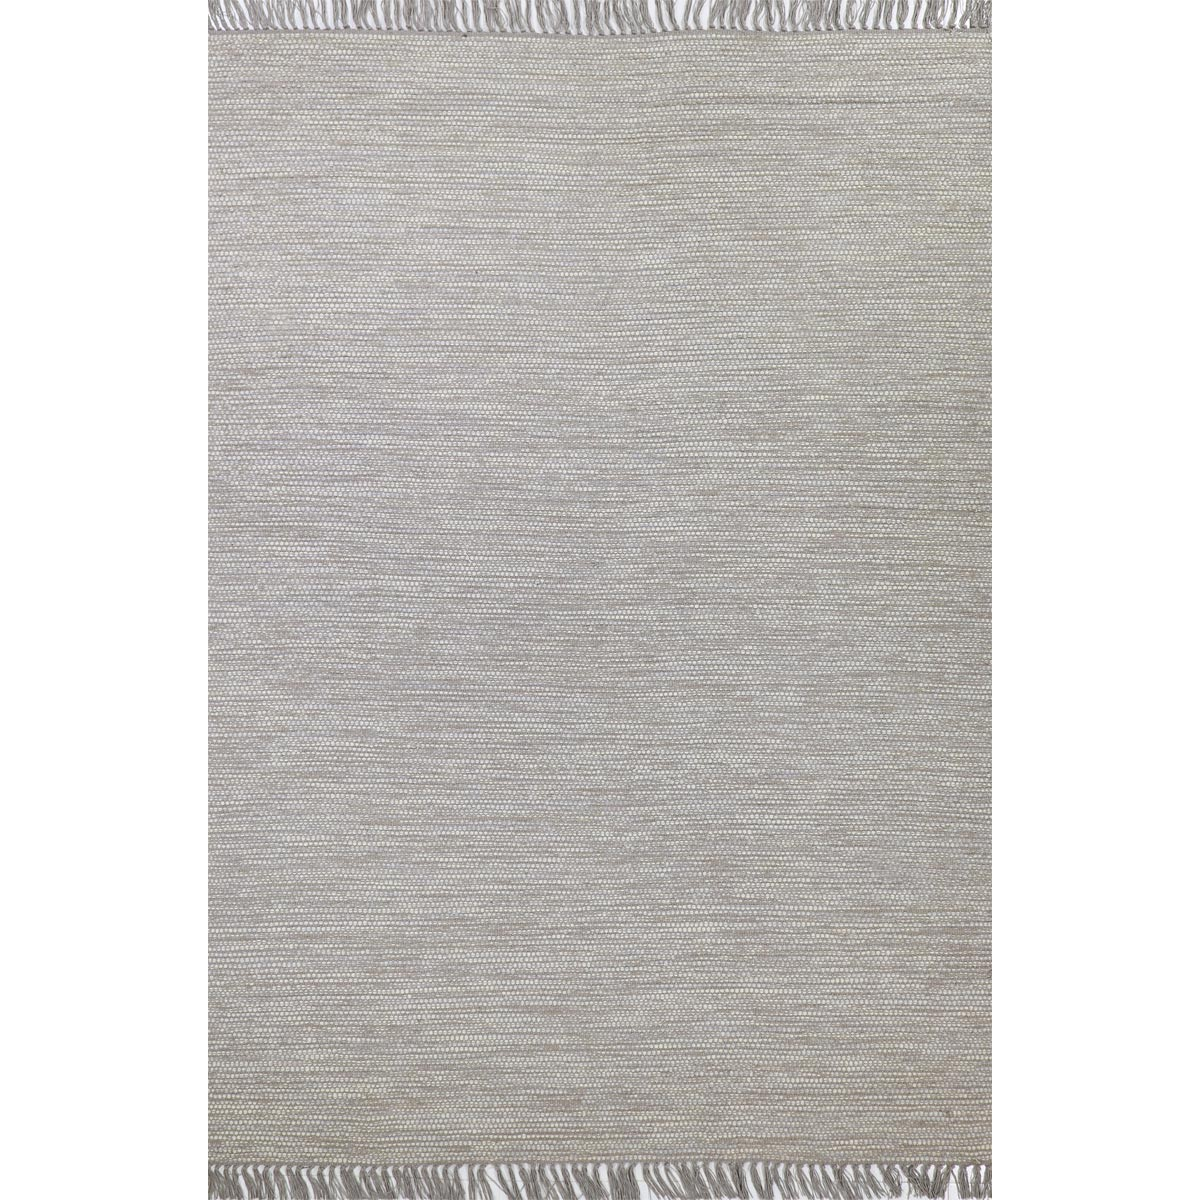 Chicago Rug 01 Dark Beige 1